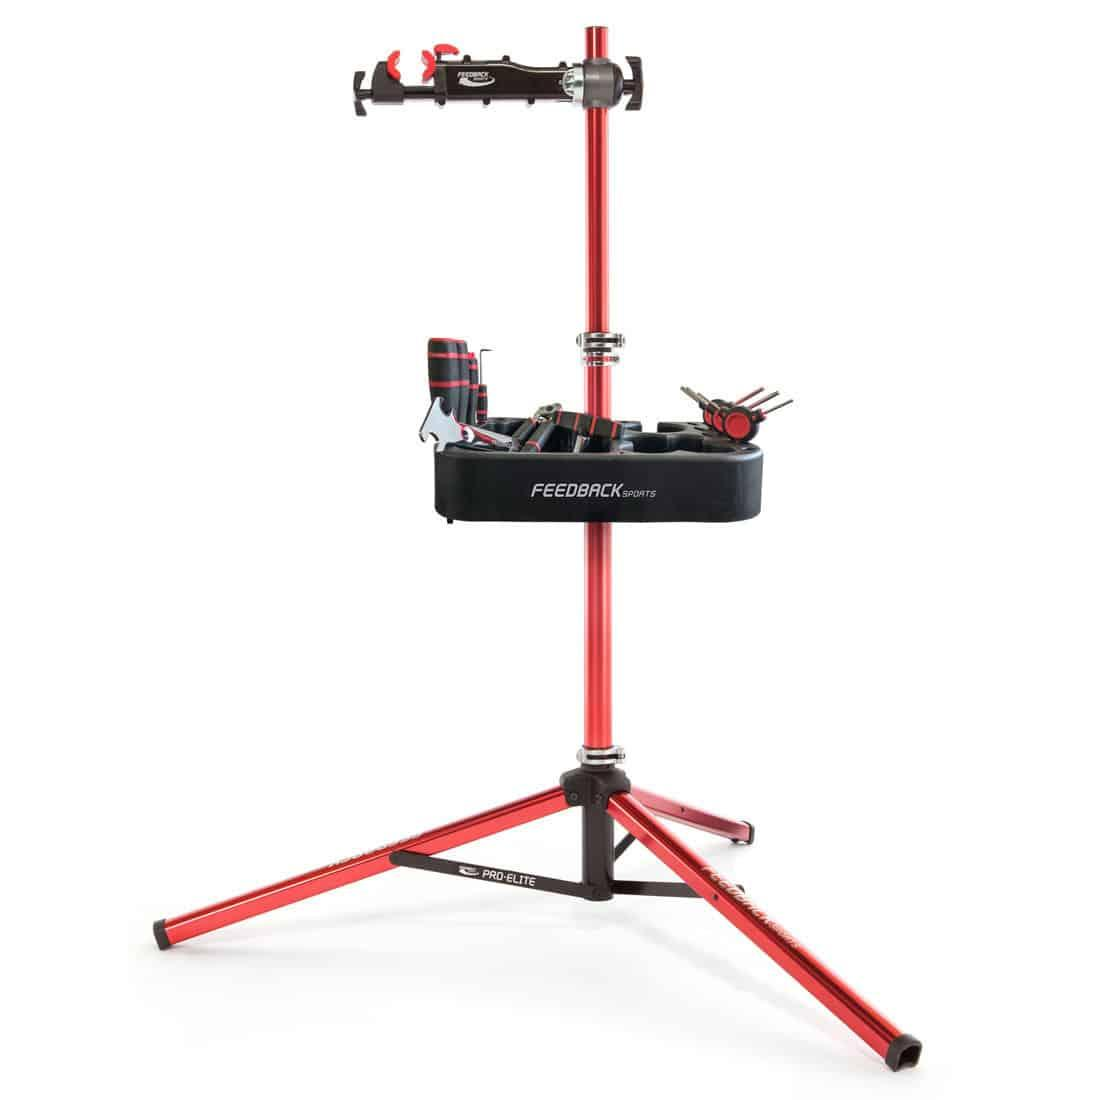 15659 Feedback Sports Tool Tray fits ALL Feedback Sports repair stands